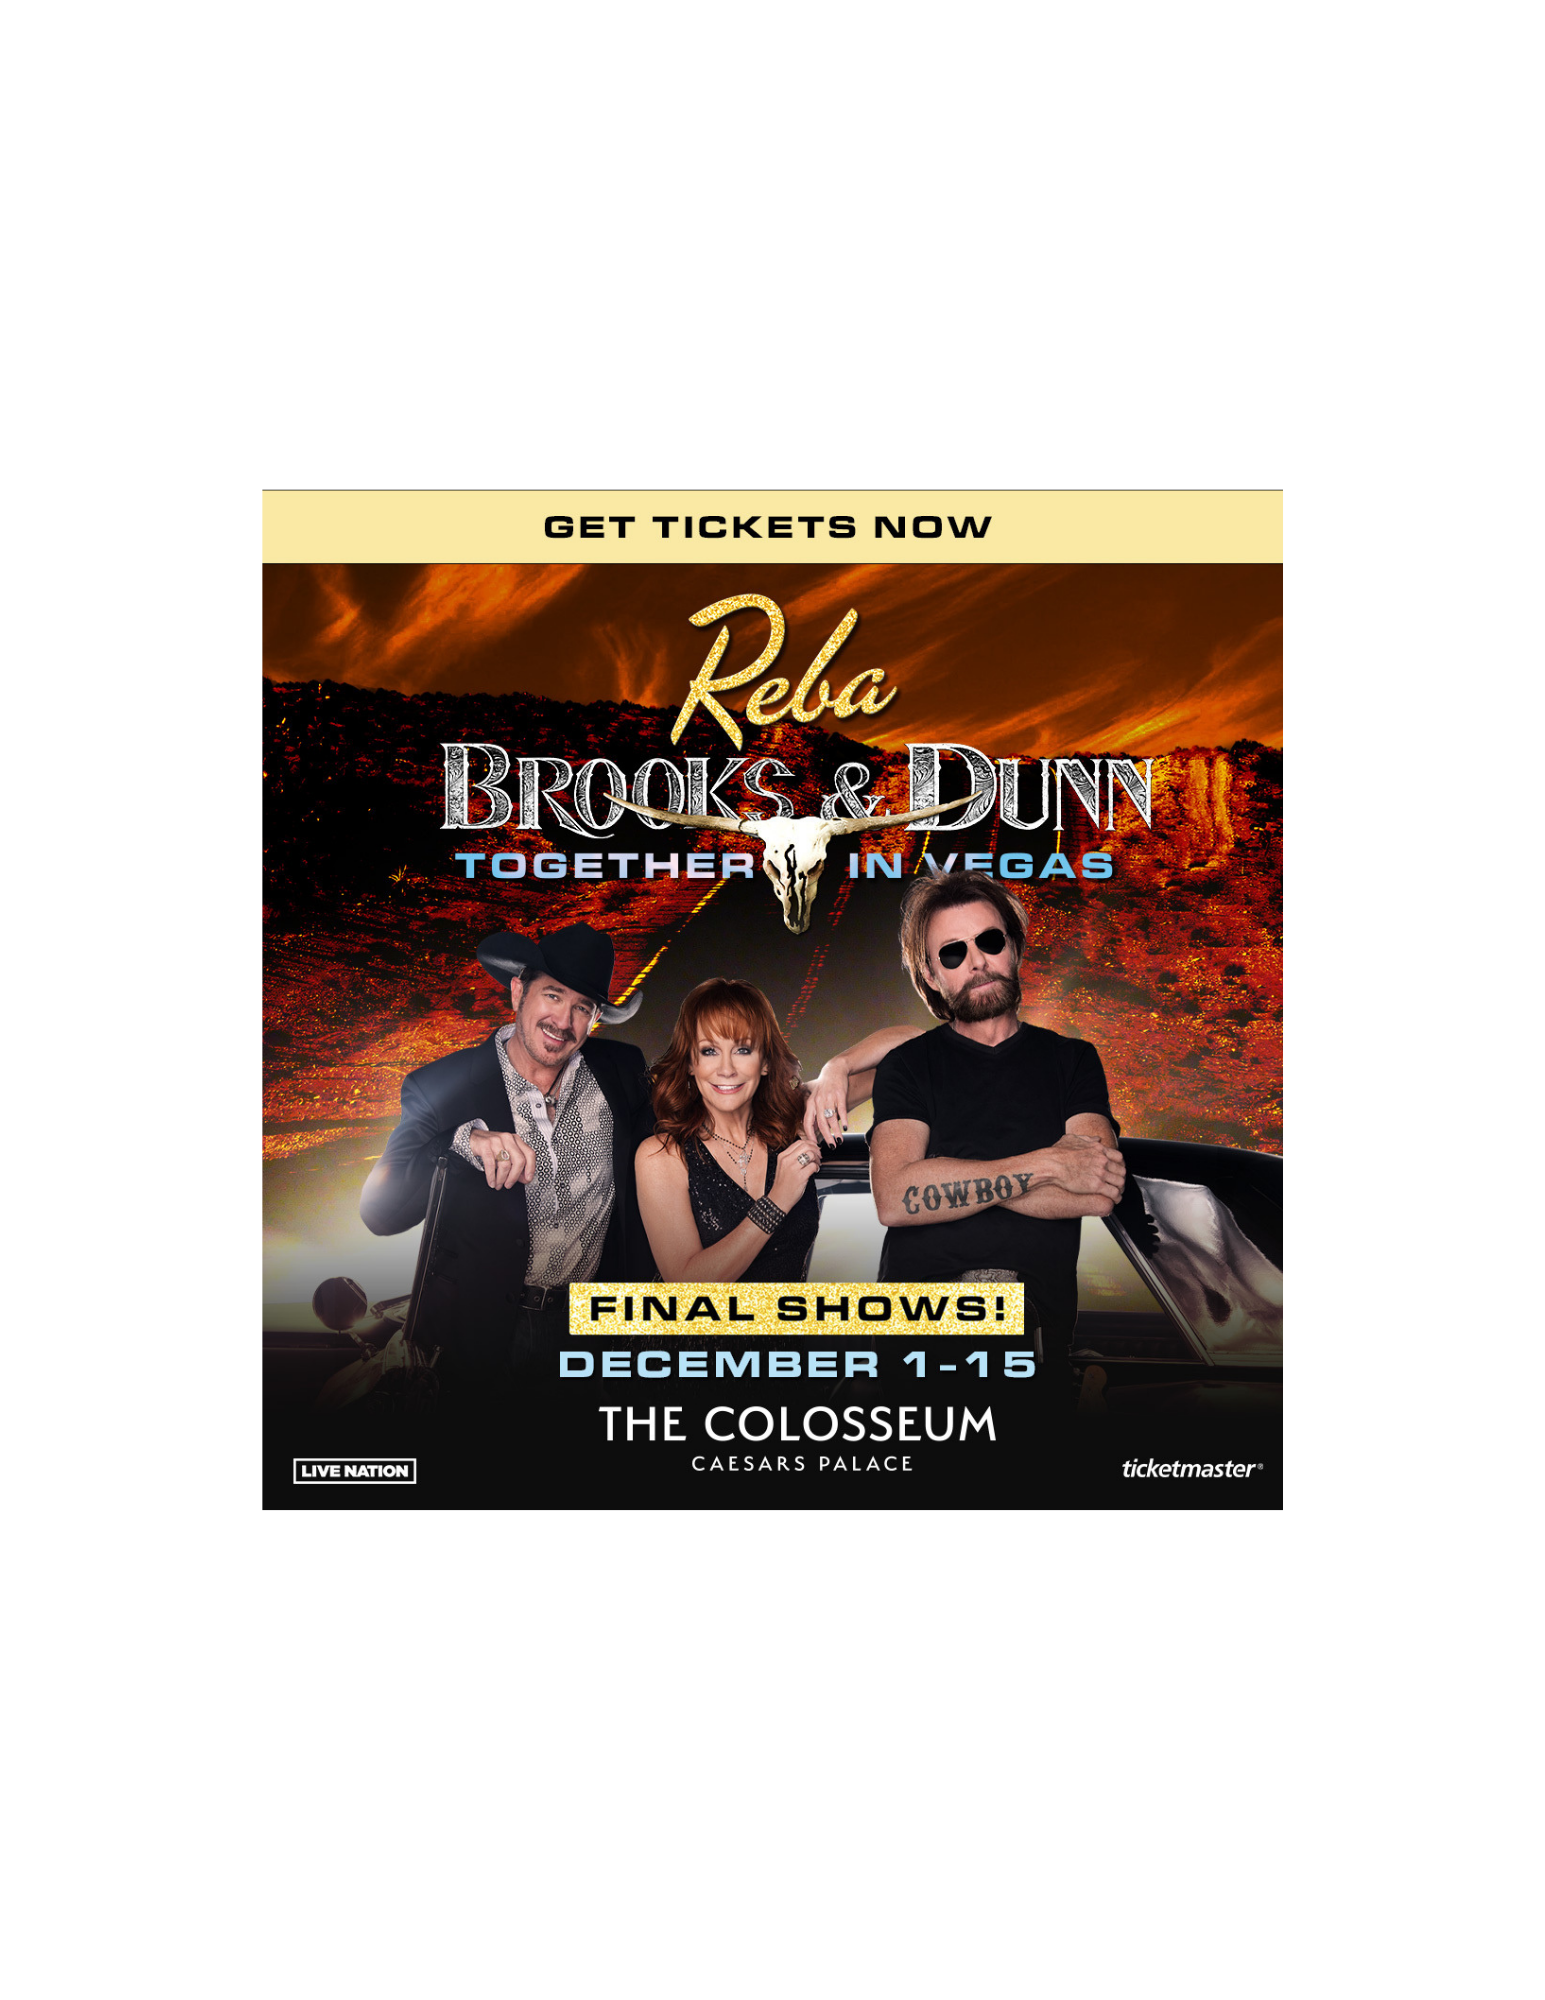 Reba with Brooks & Dunn Contest Rules